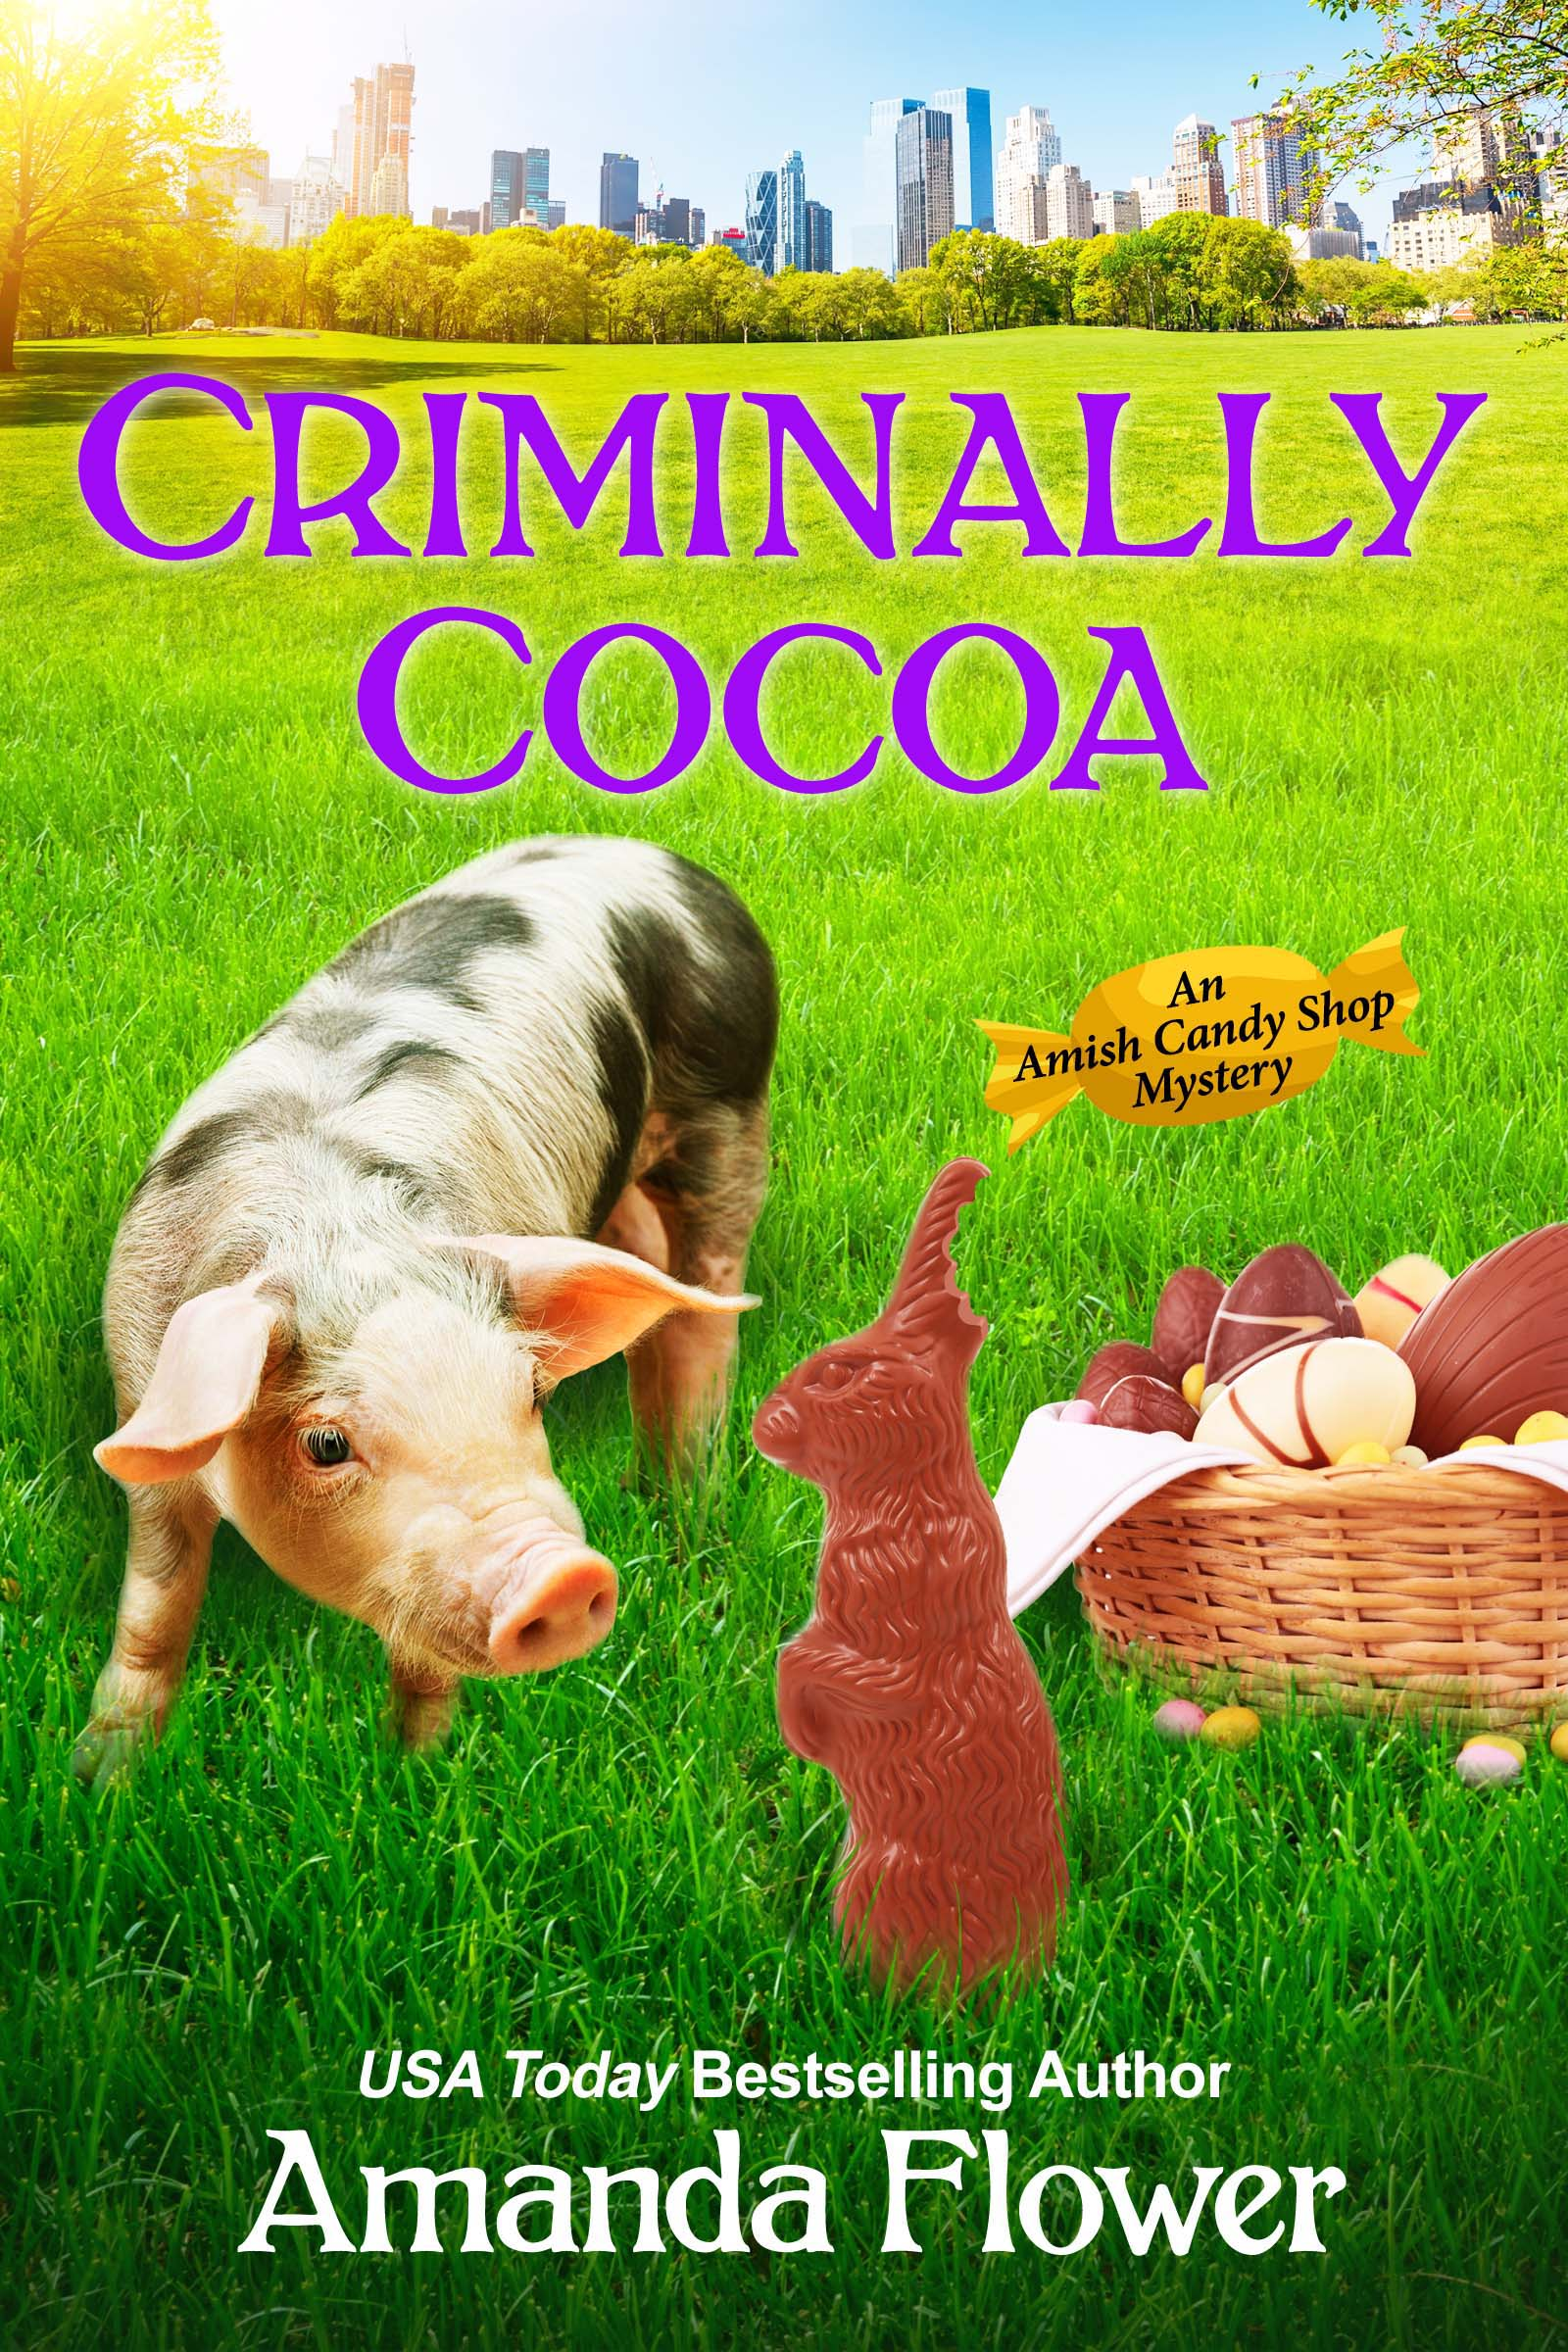 Criminally cocoa cover image